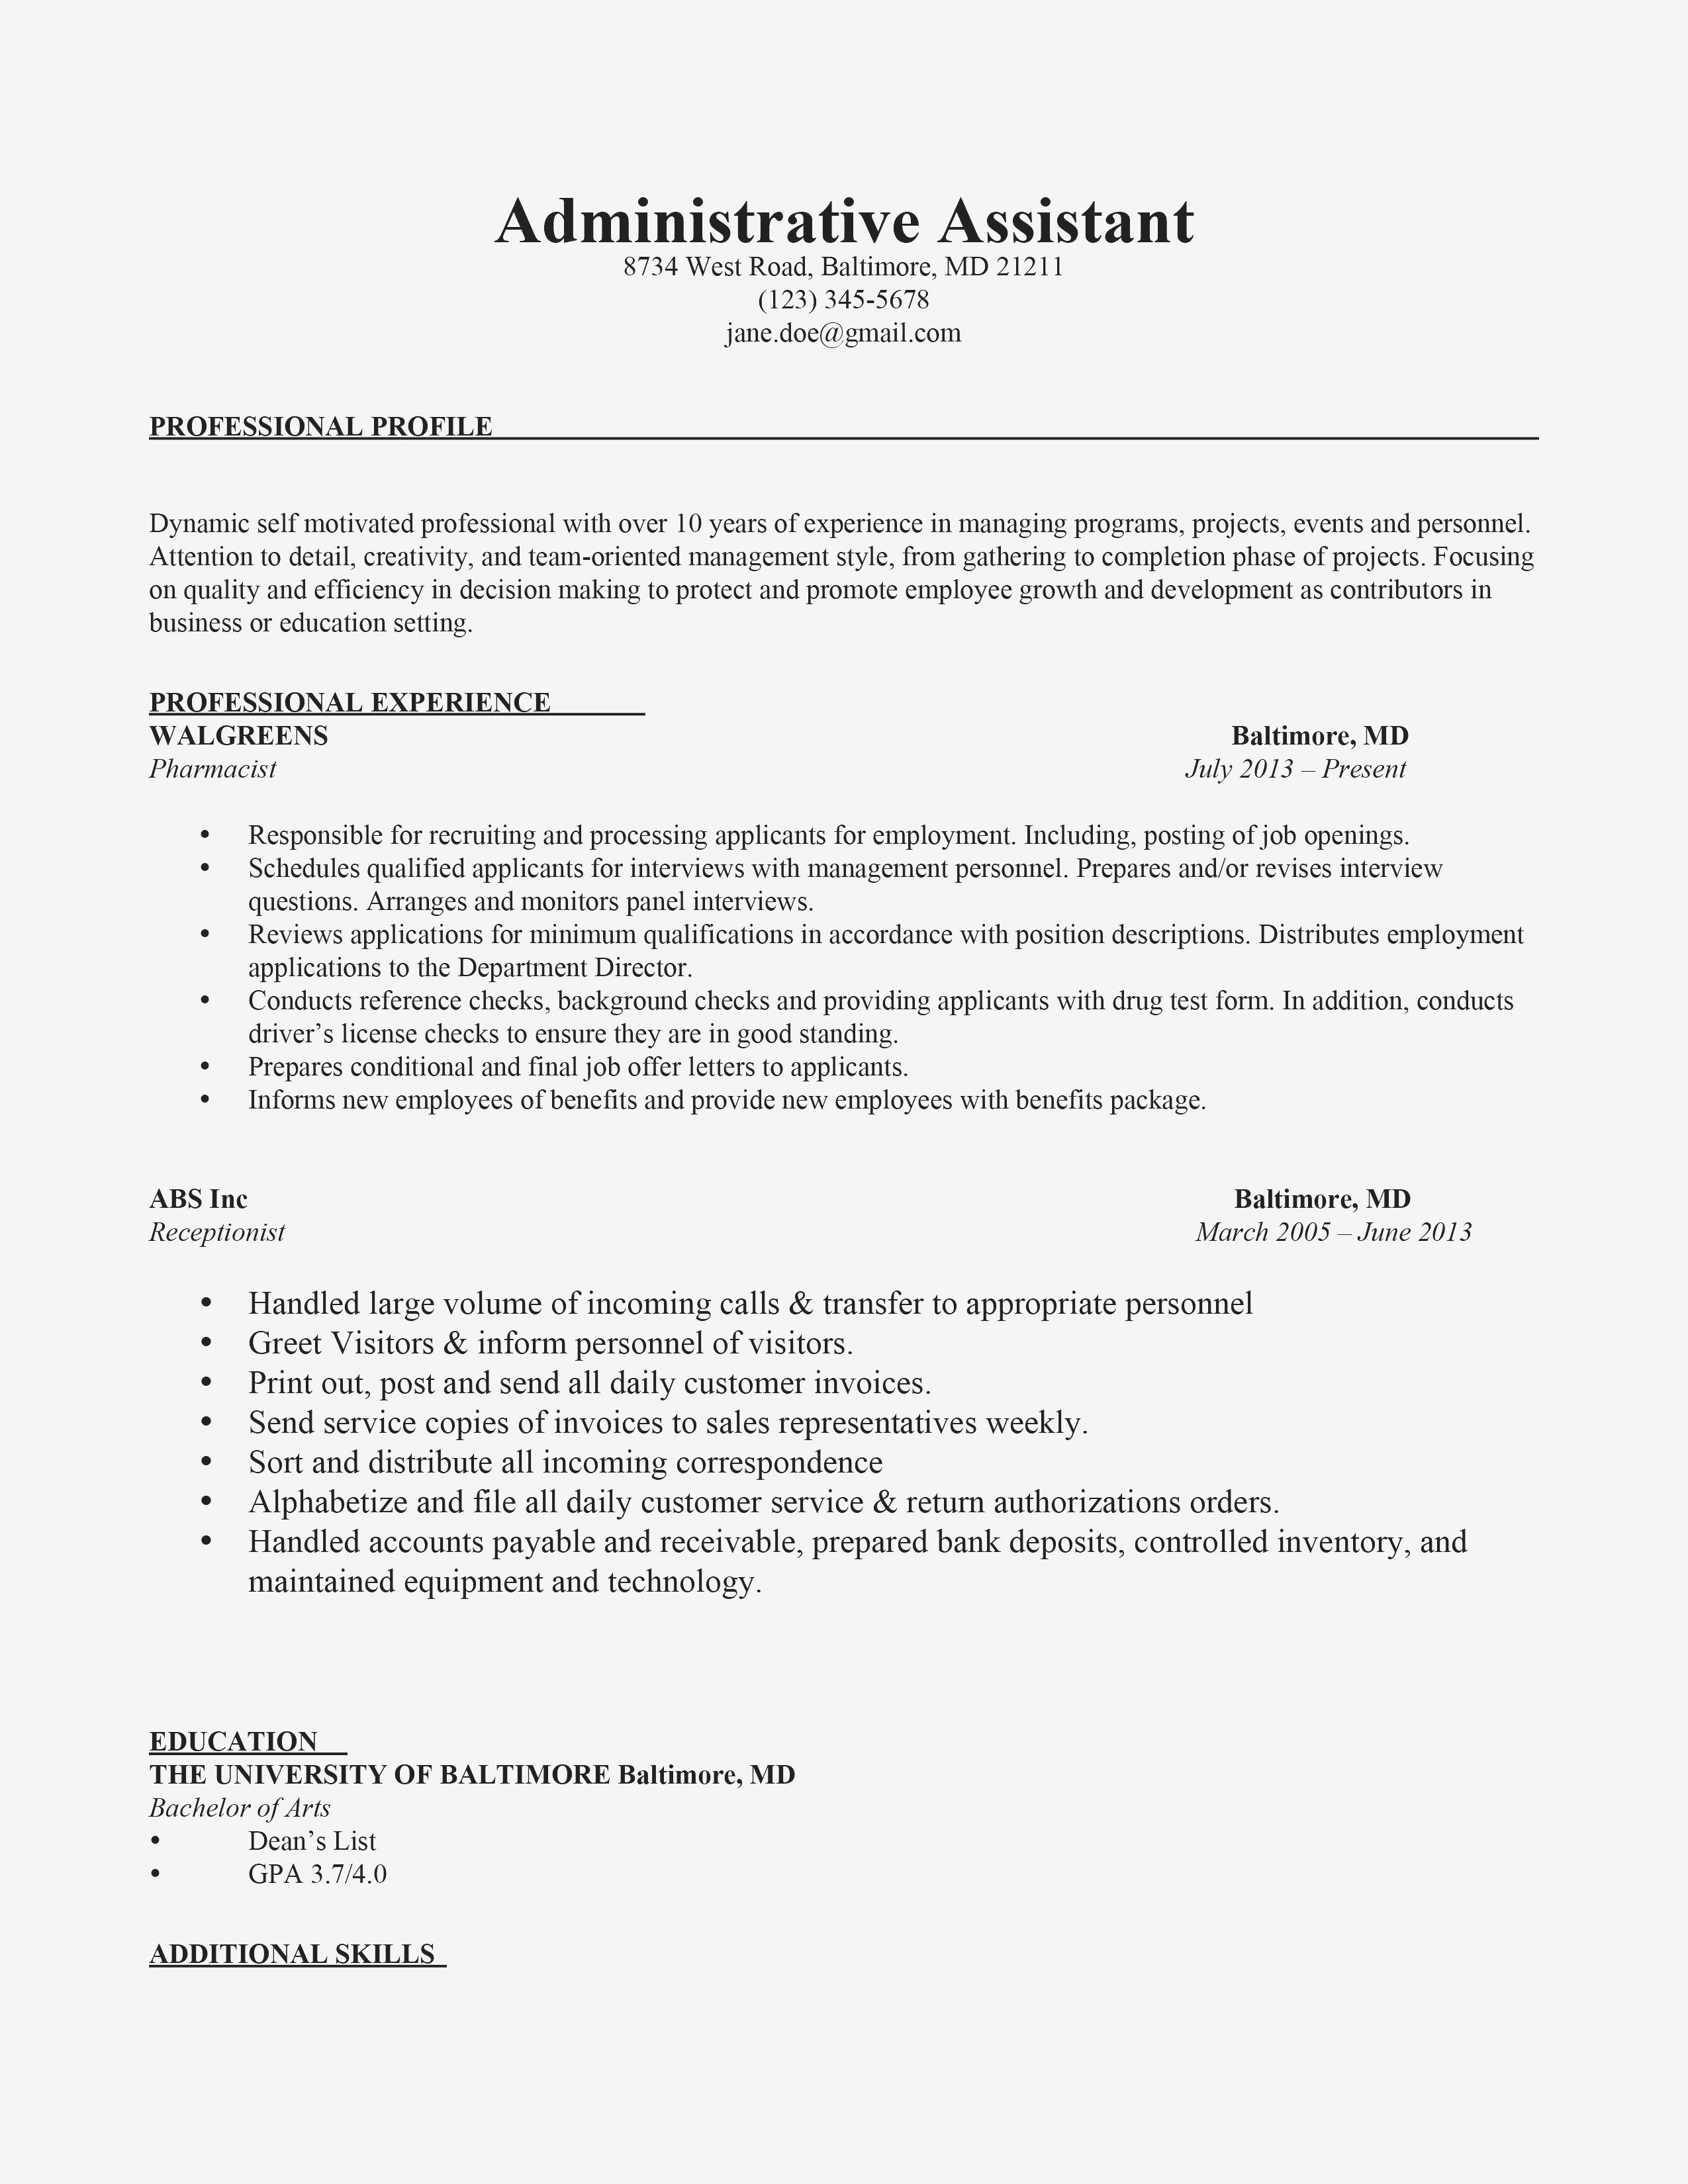 Important Points to Include in a Cover Letter Example